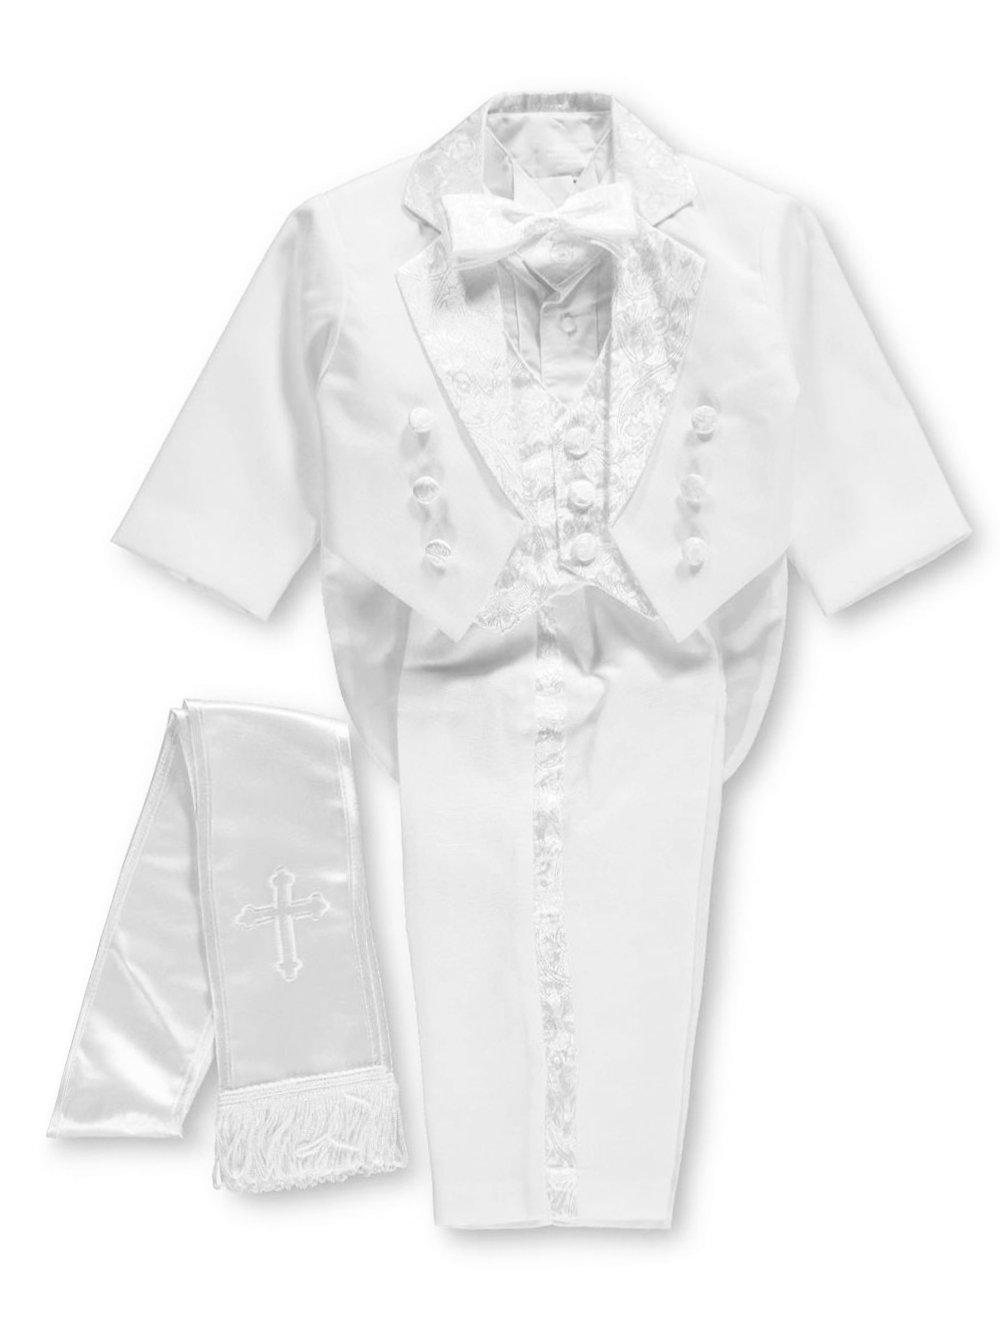 Pretty Me Baby Boys' Embroidered 6-Piece Christening Tuxedo - white, 6 months